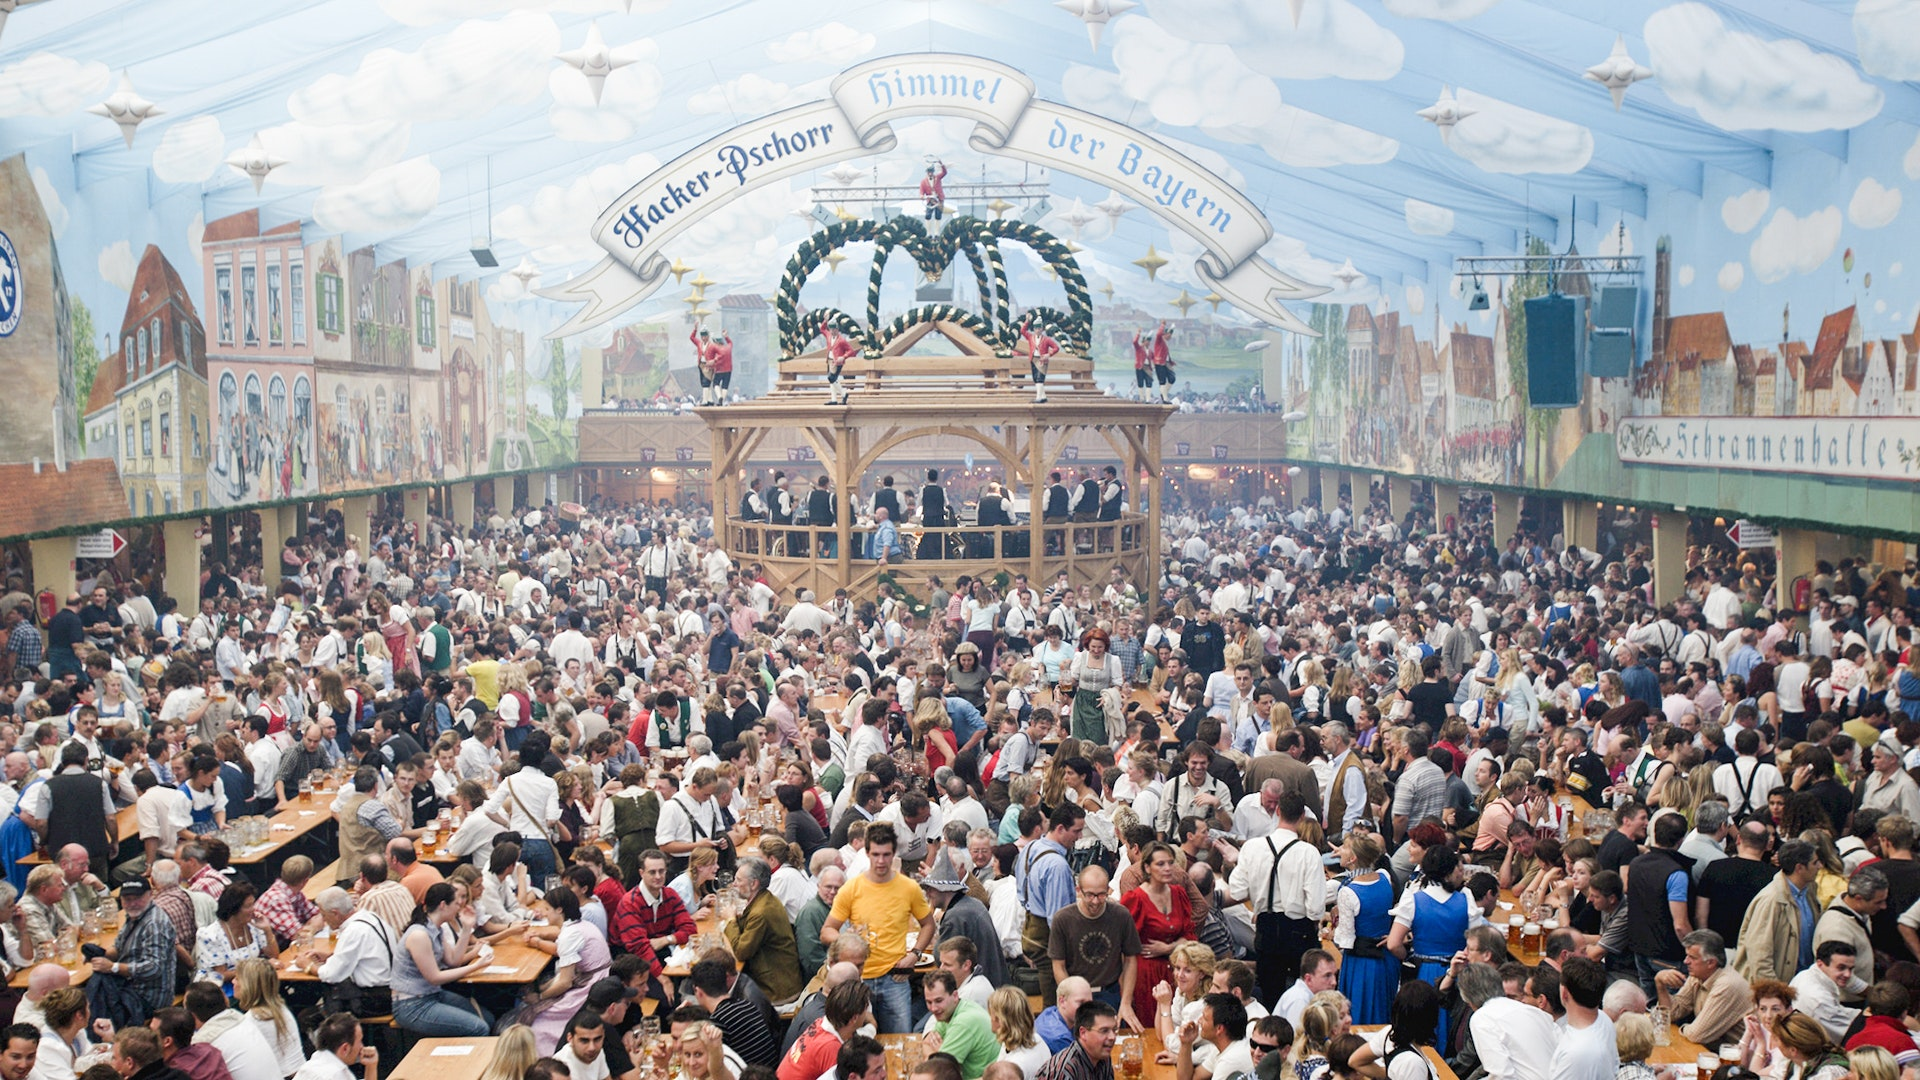 Oktoberfest may be crowded, but it's totally worth a trip to Munich.